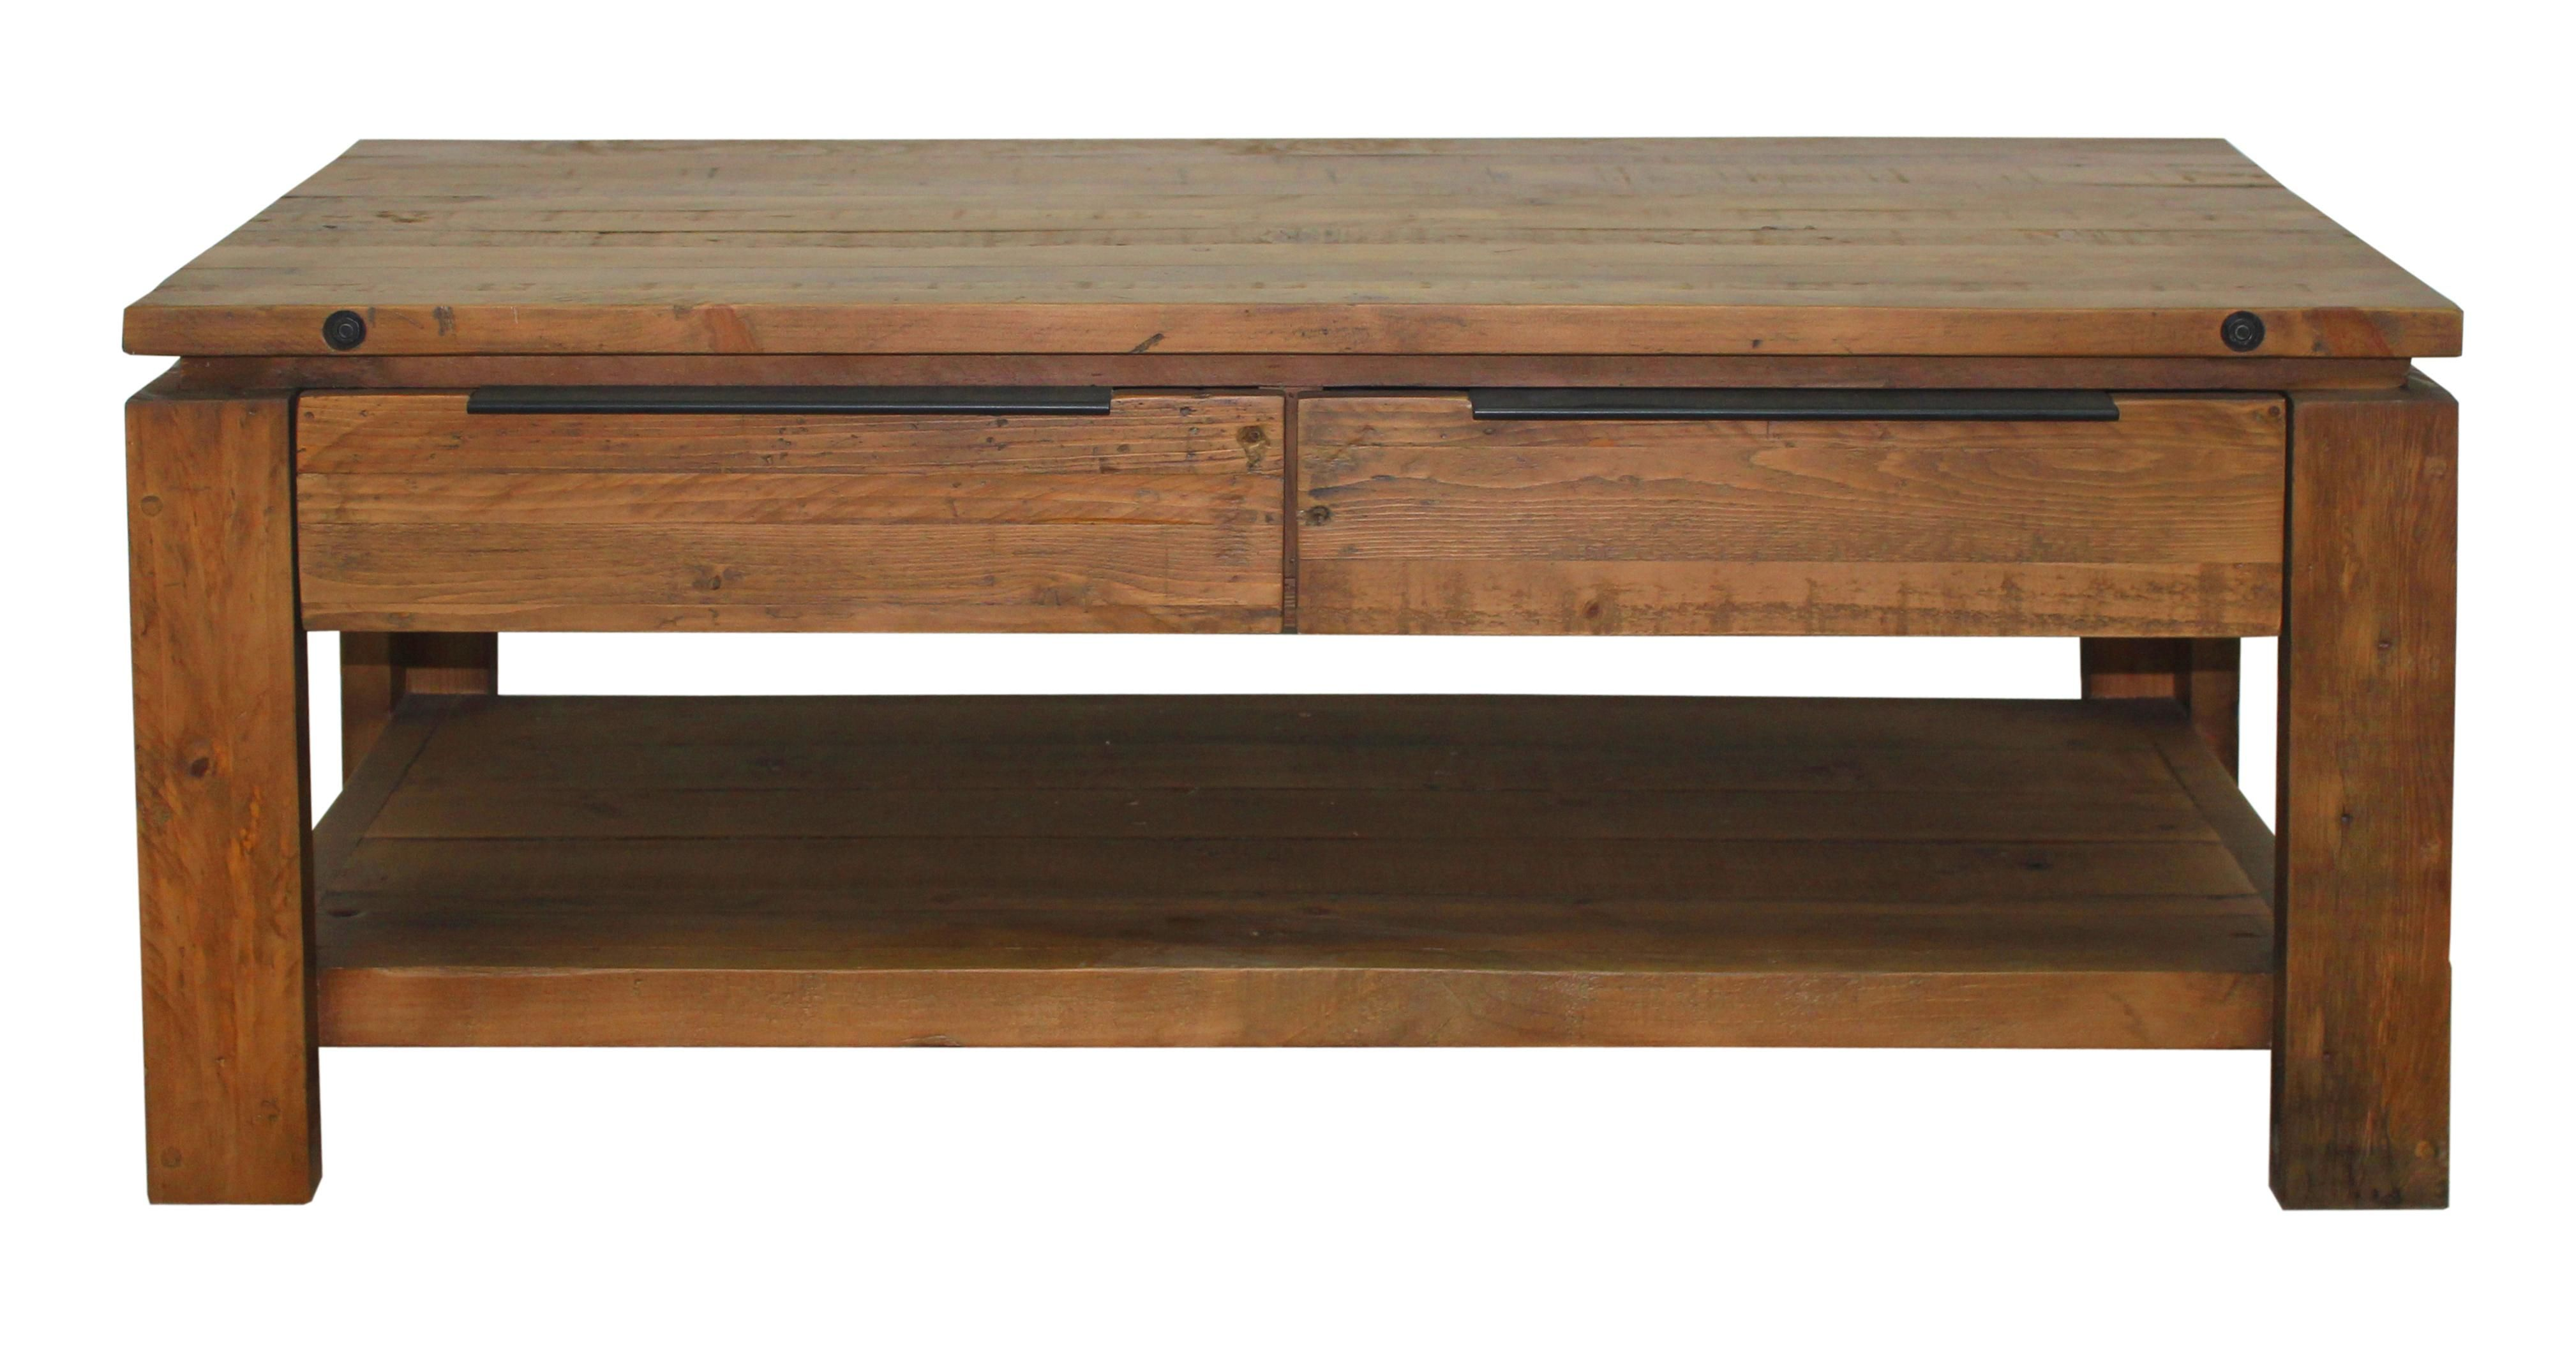 Coffee Tables Coffee Table Coffee Table With Storage Coffee Table Images [ 2141 x 4036 Pixel ]